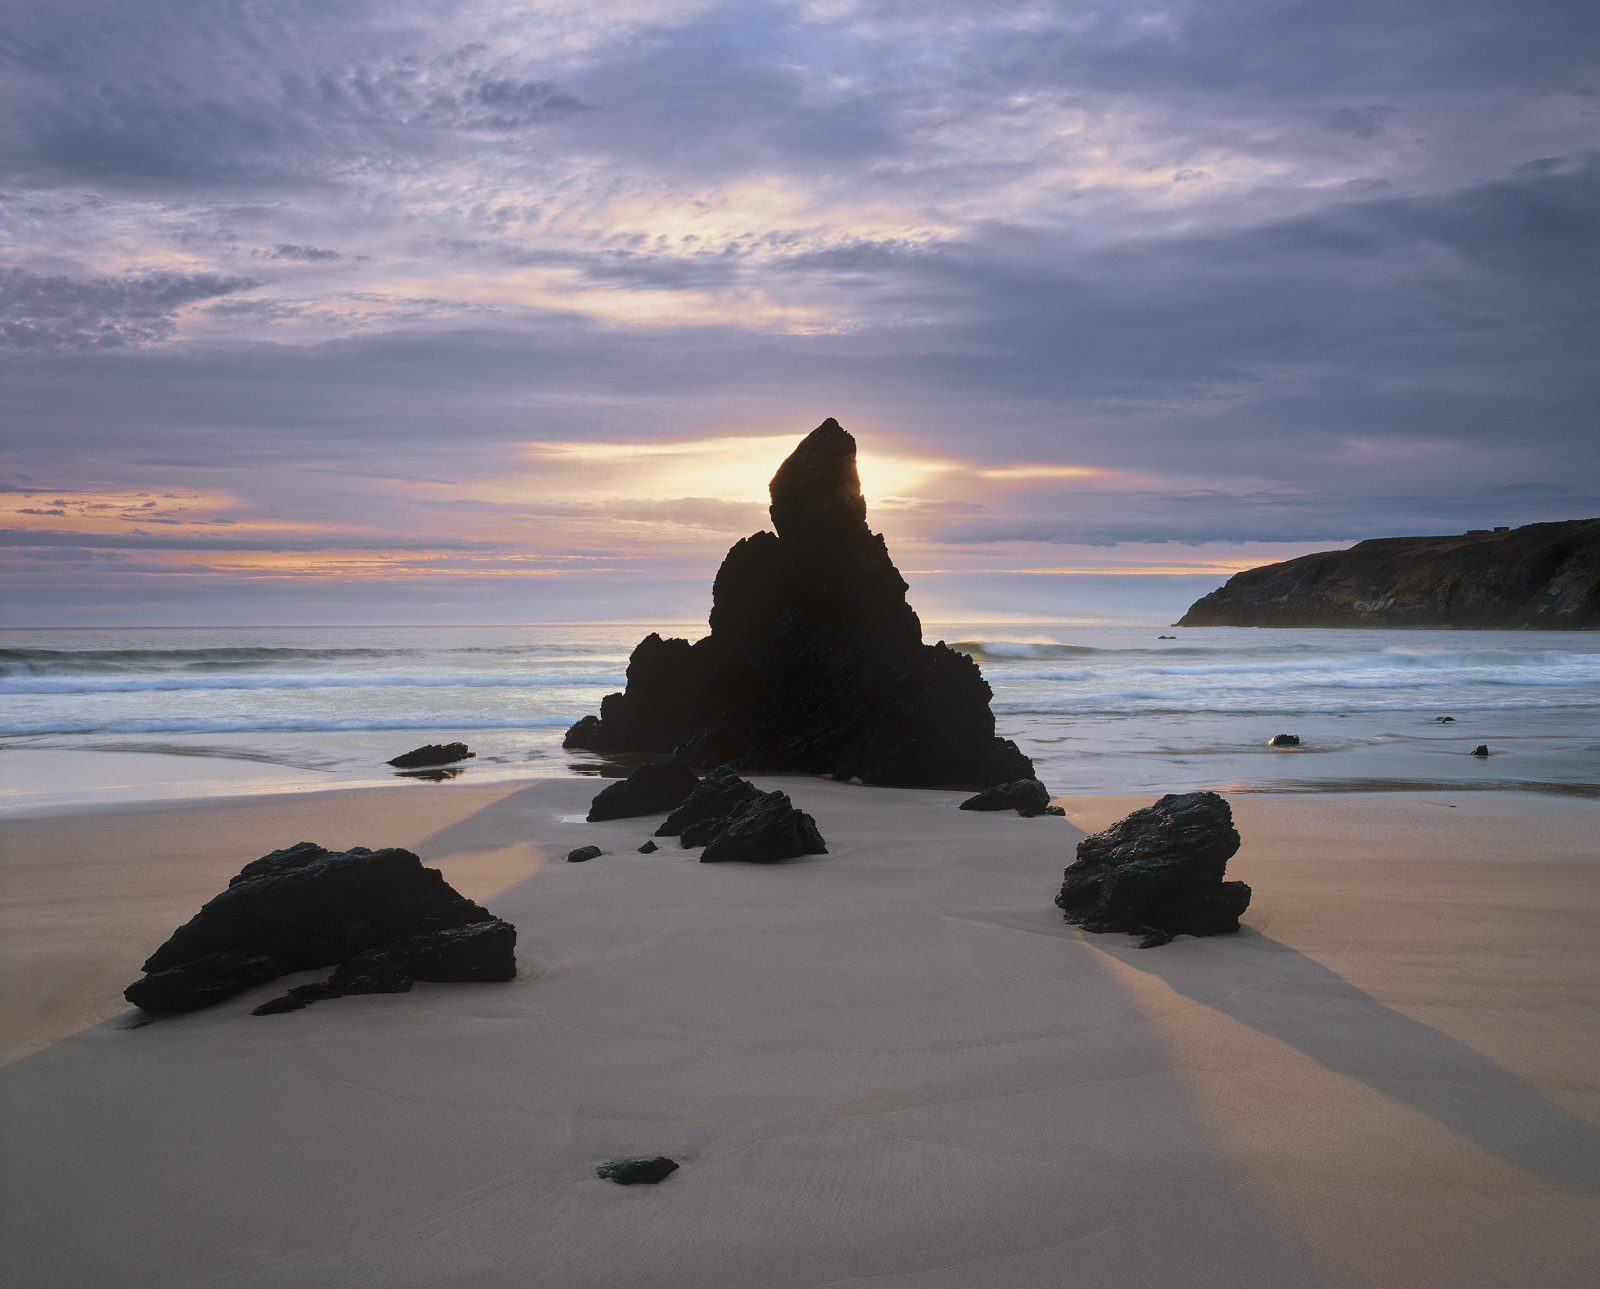 Sango Bay is quite unusual in that it is one of very few Scottish beaches that has rock stacks growing like mushrooms out of...